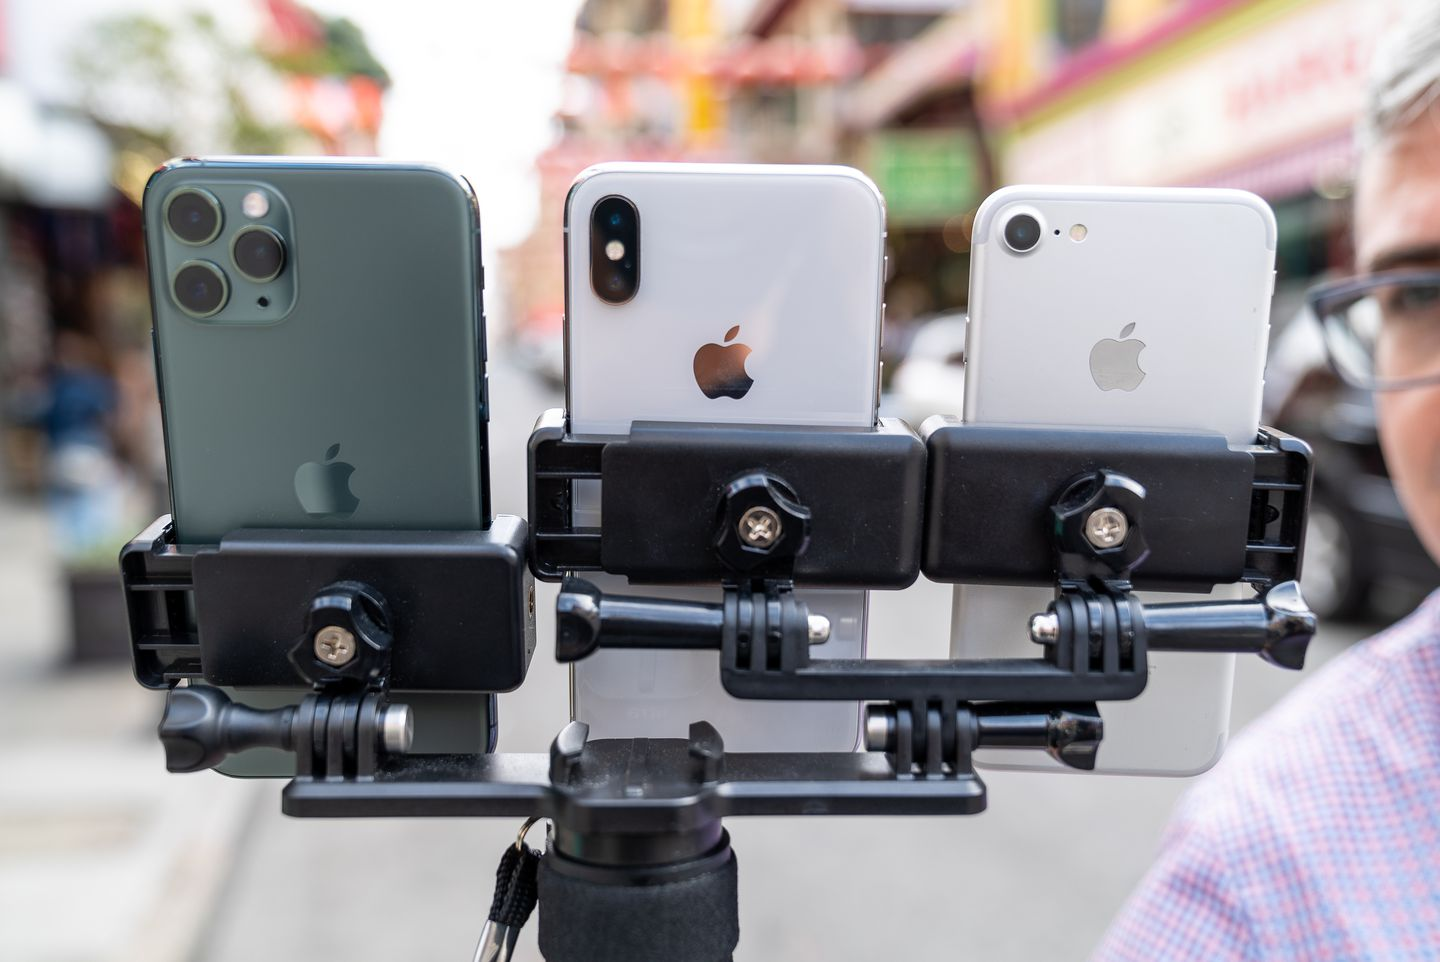 A three-way selfie stick, nicknamed the Triclops, helps The Post's Geoffrey A. Fowler test three camera phones at once. (James Pace-Cornsilk/The Washington Post)